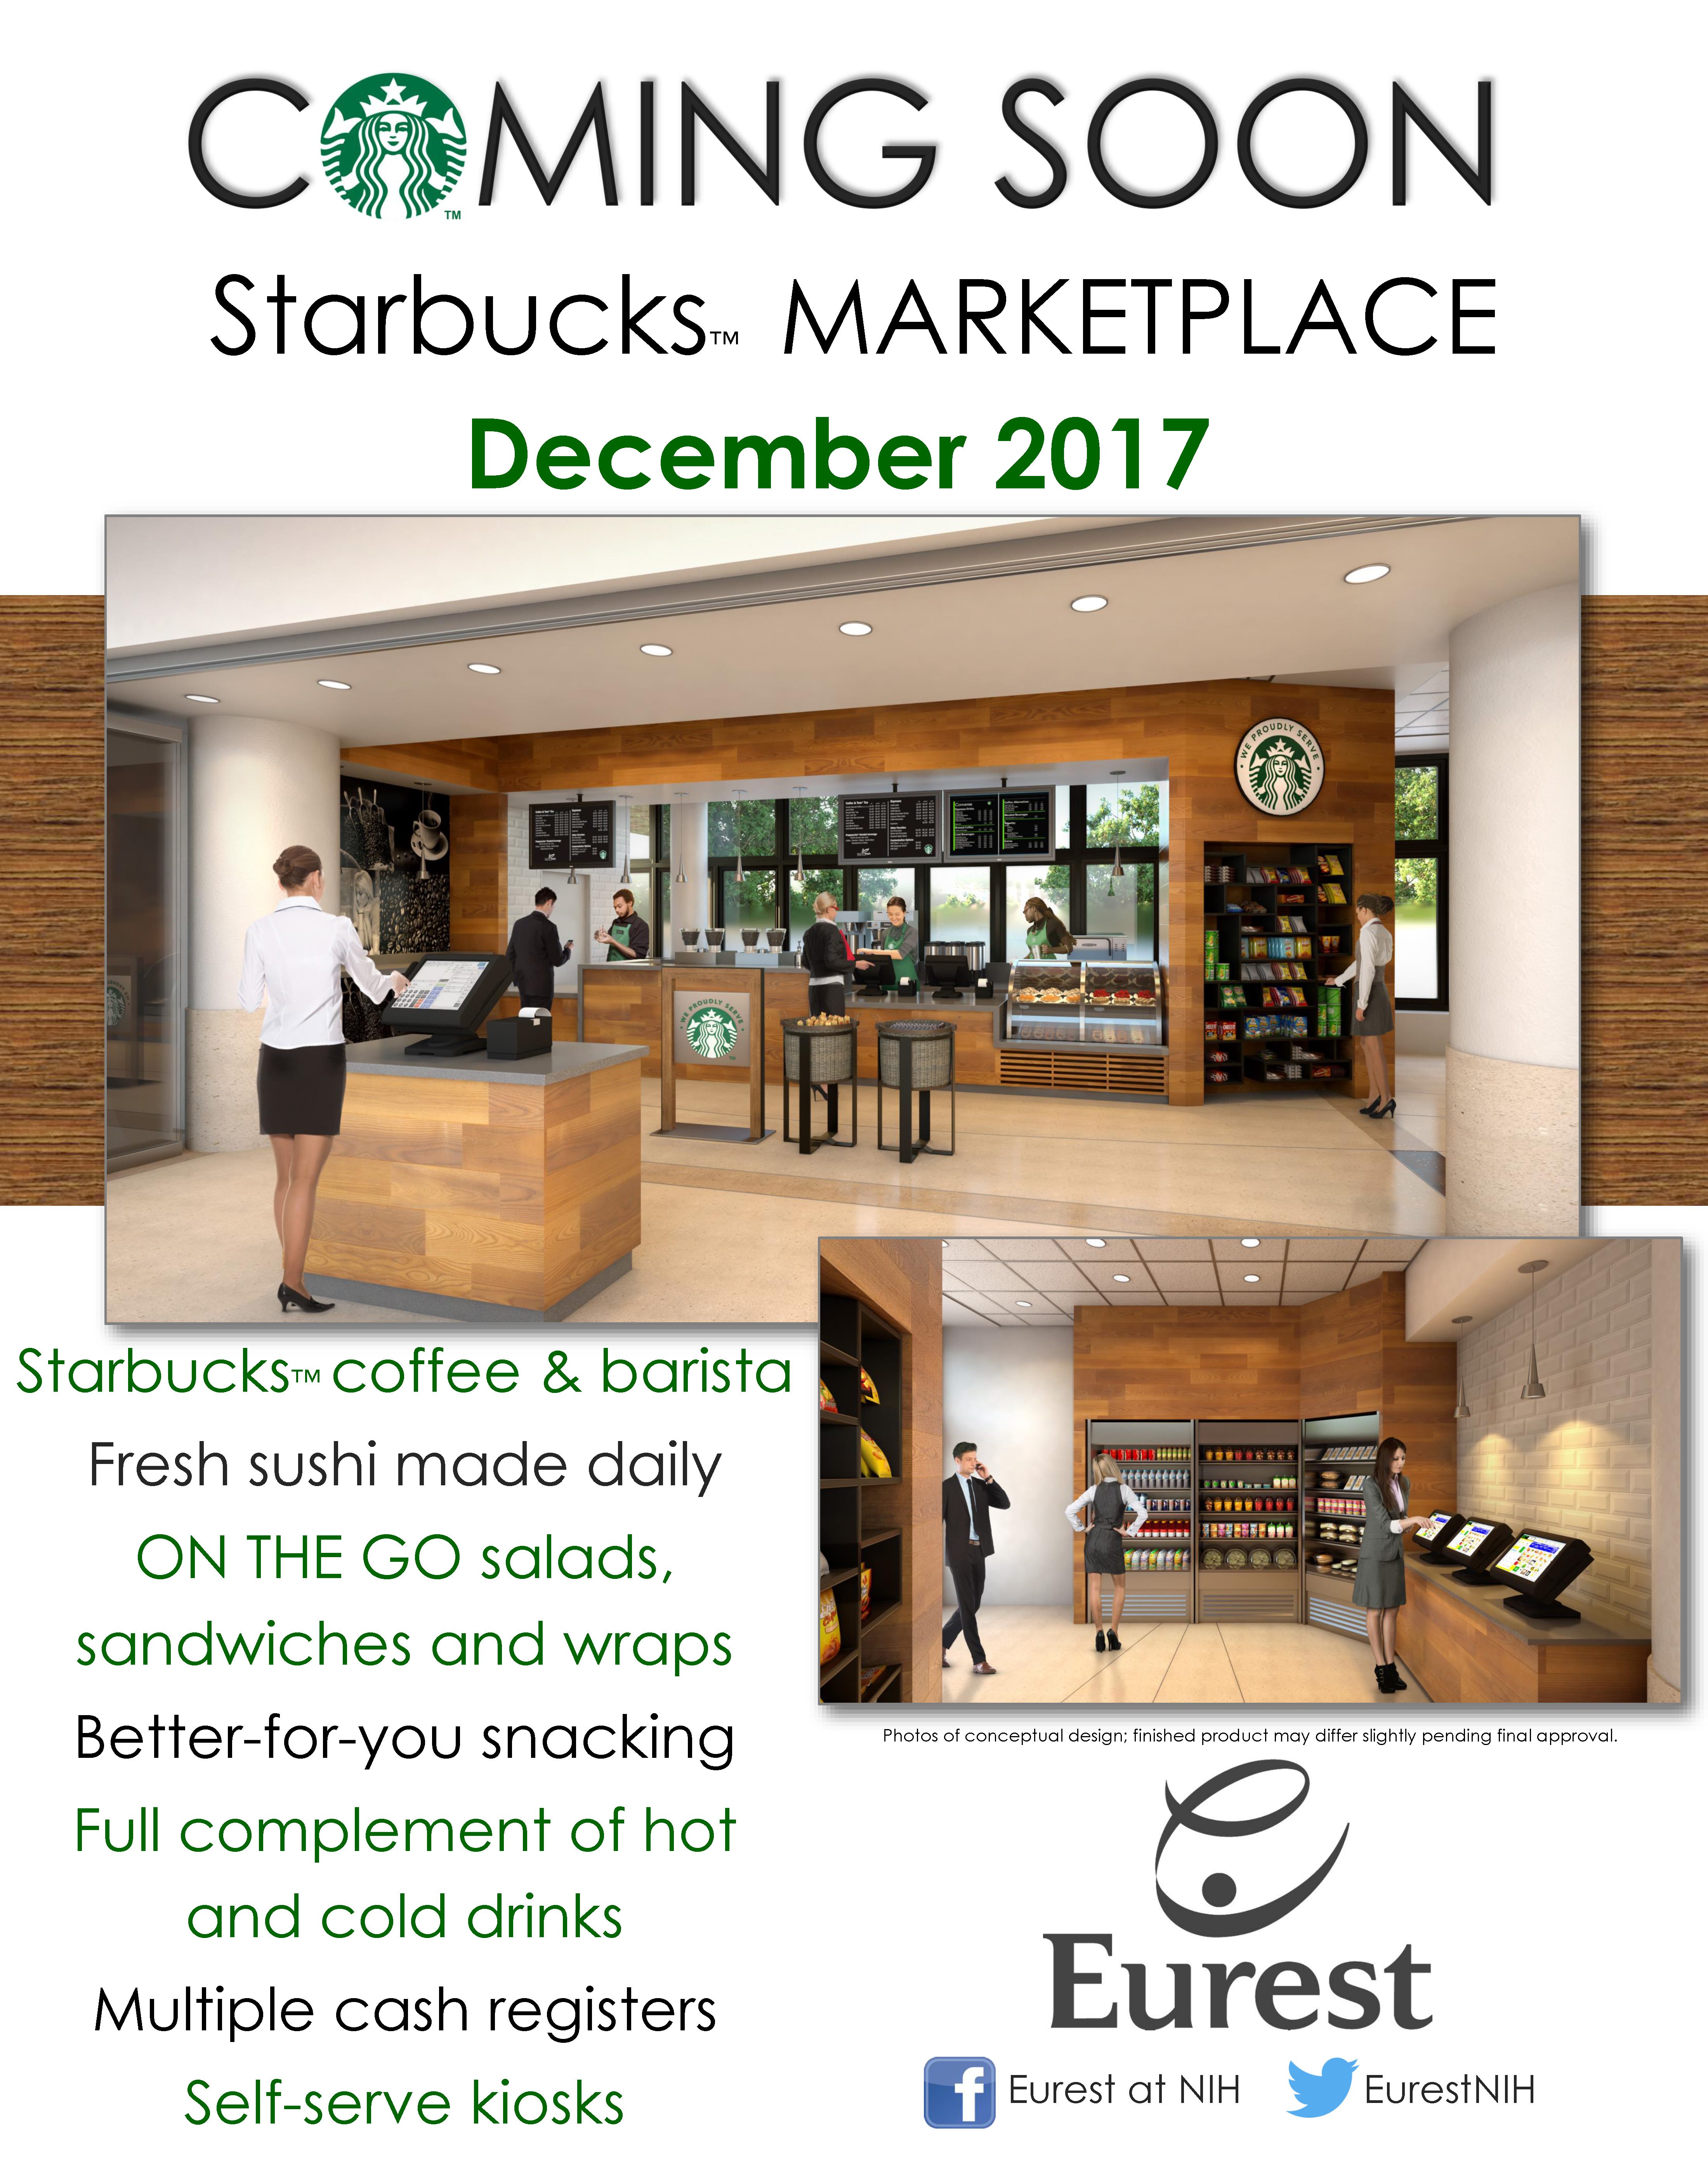 Coming Soon Starbucks Marketplace